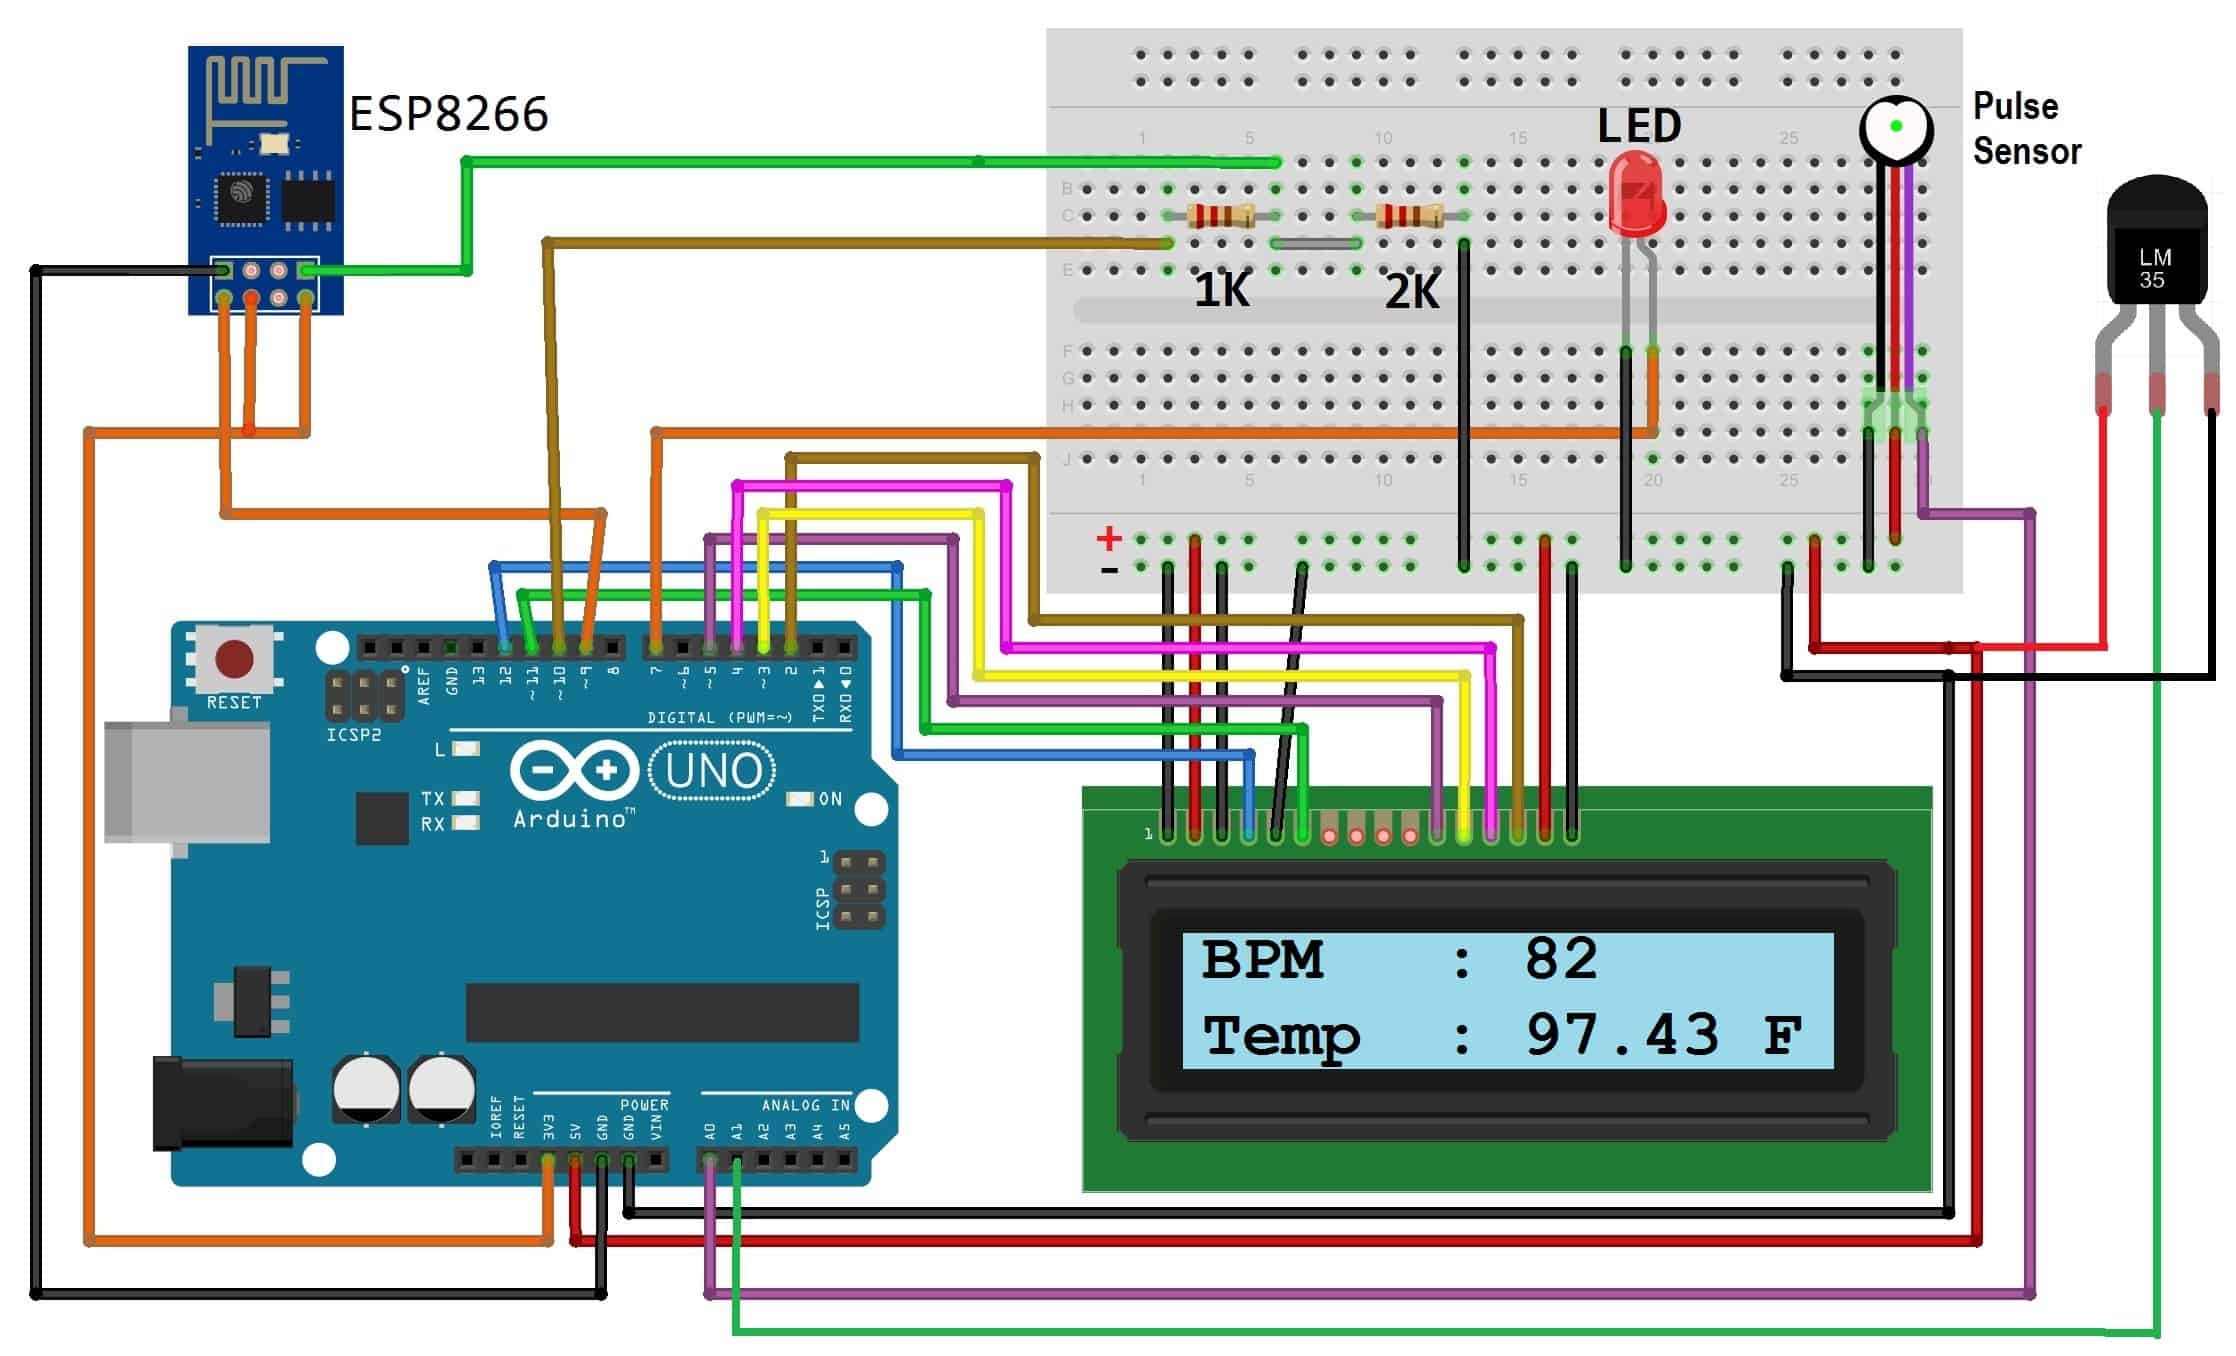 Iot Based Patient Health Monitoring System Using Esp8266 Arduino Temperature Sensor Circuit Diagram Connect Pulse Output Pin To A0 Of And Other Two Pins Vcc Gnd 2 Lm35 A1